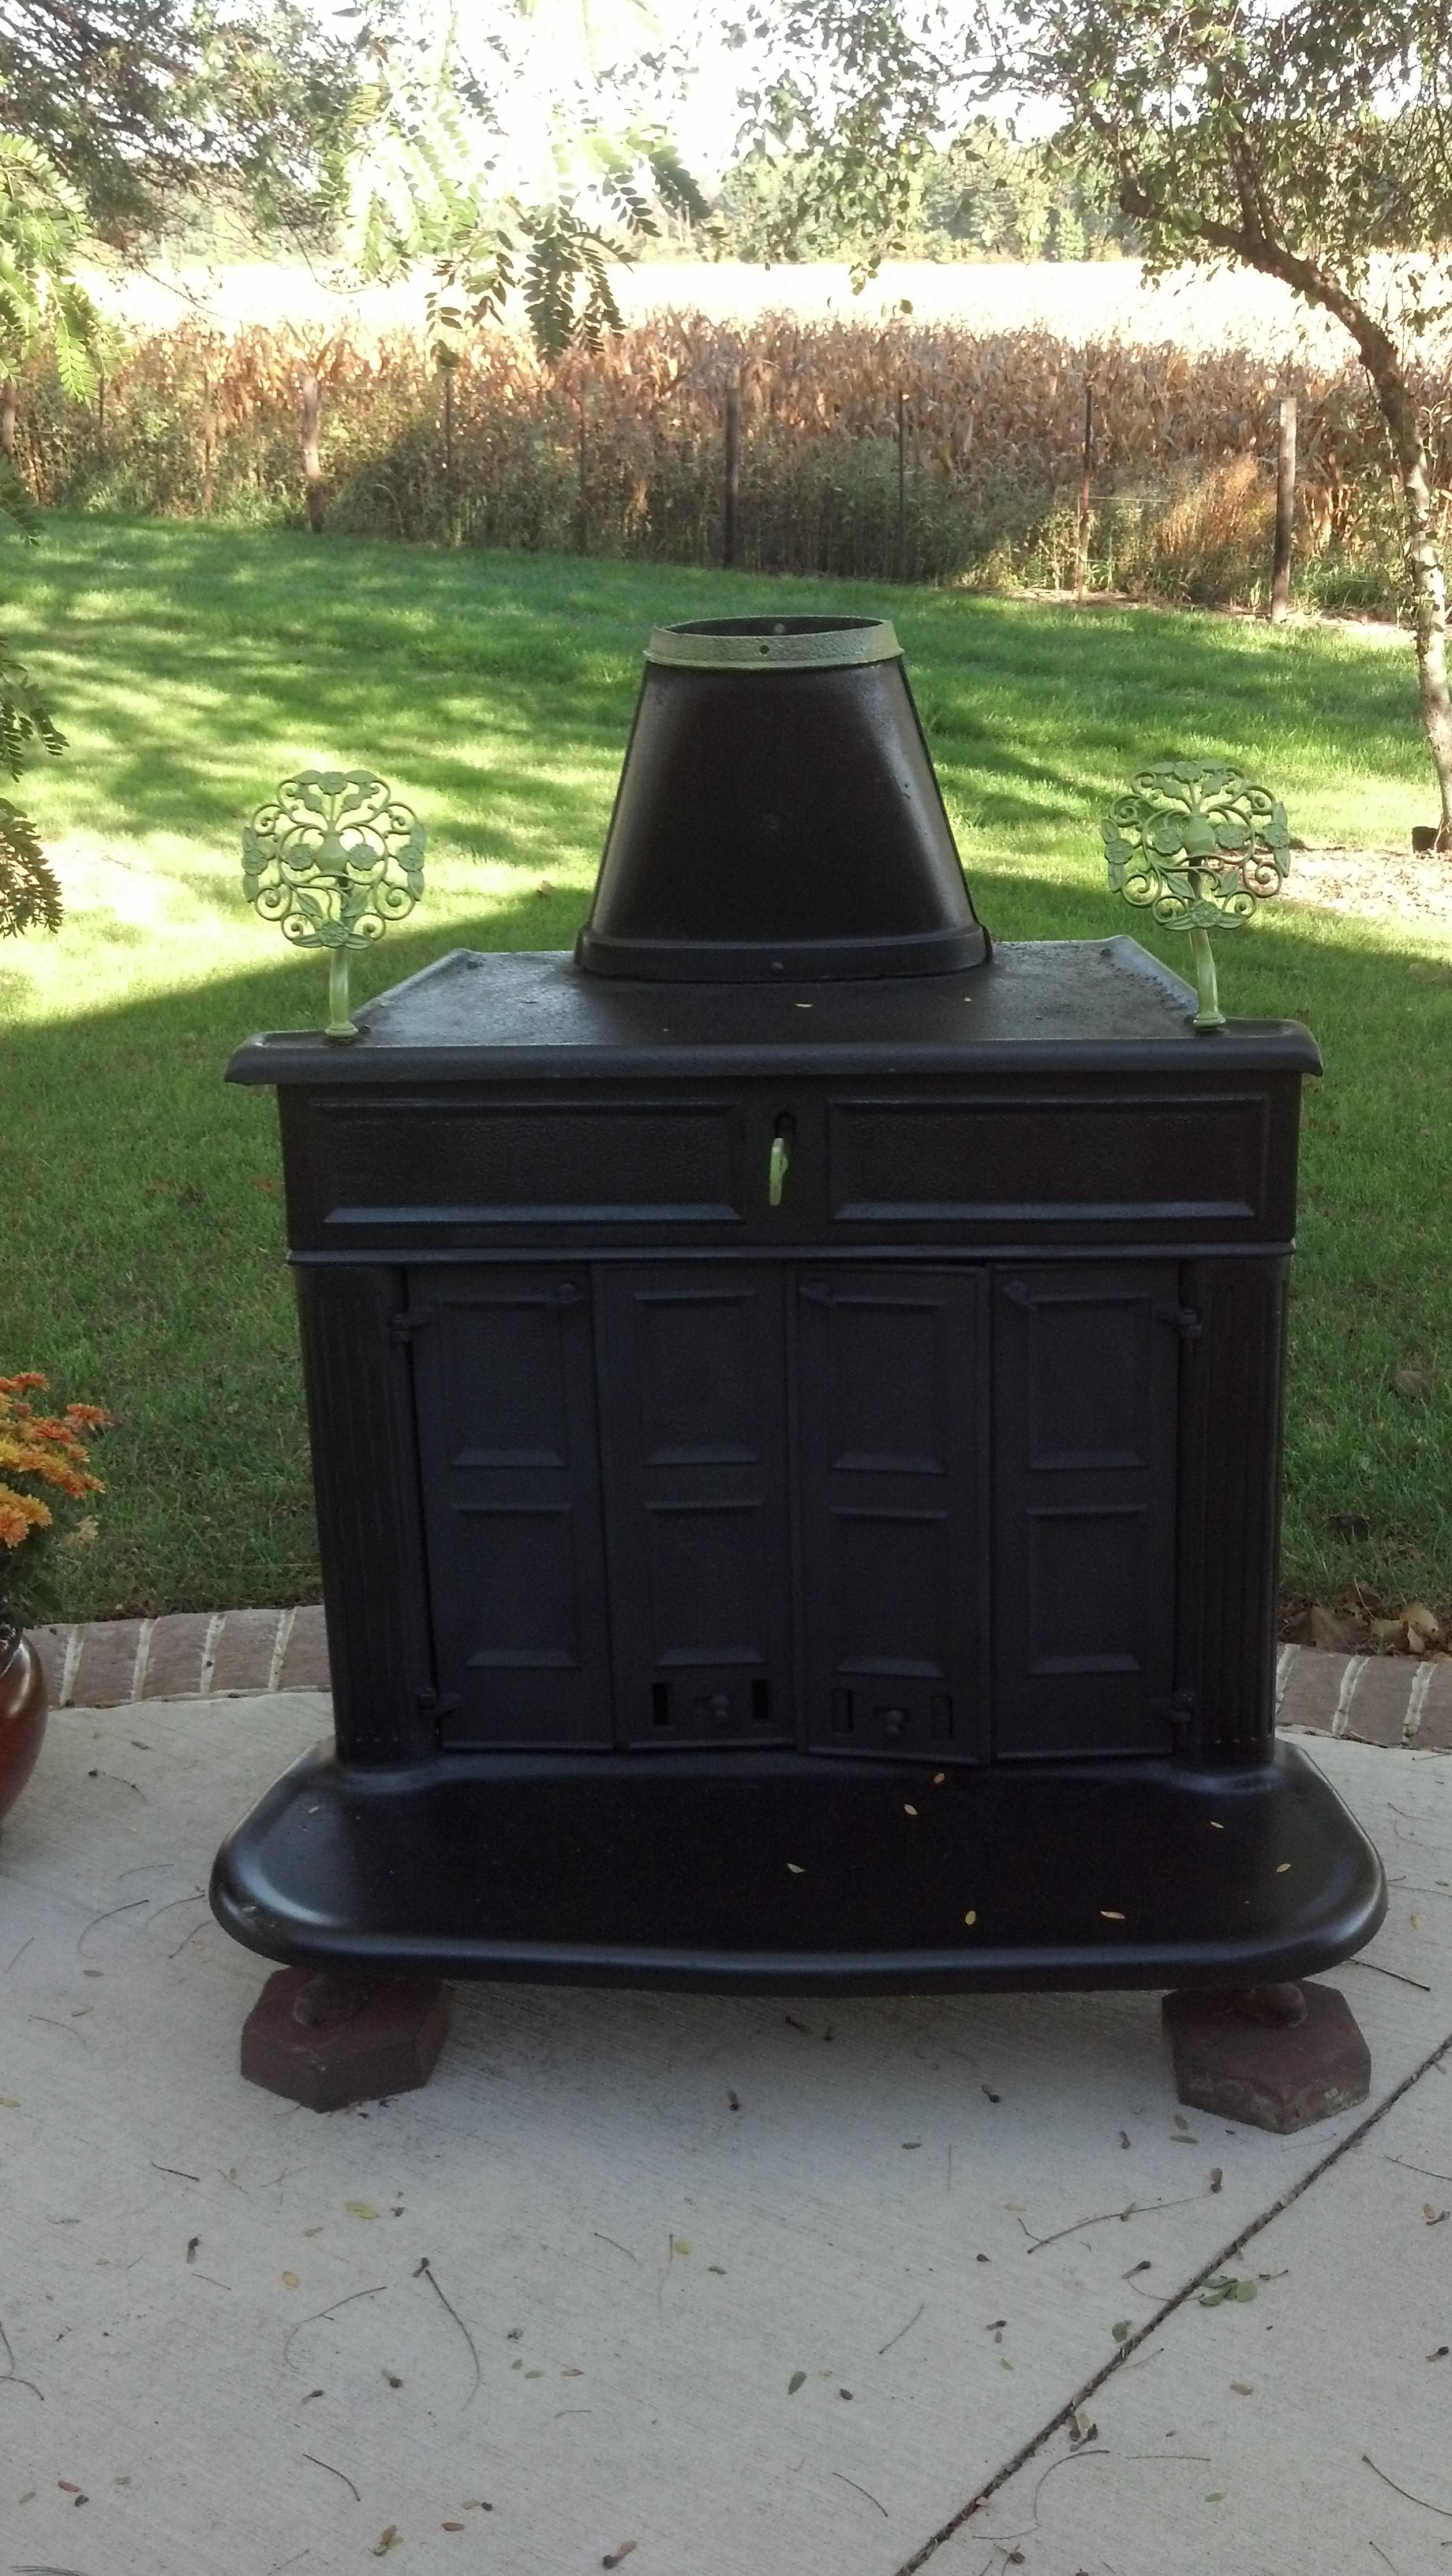 reuse wood stove outside - Google Search | outdoor | Pinterest ...